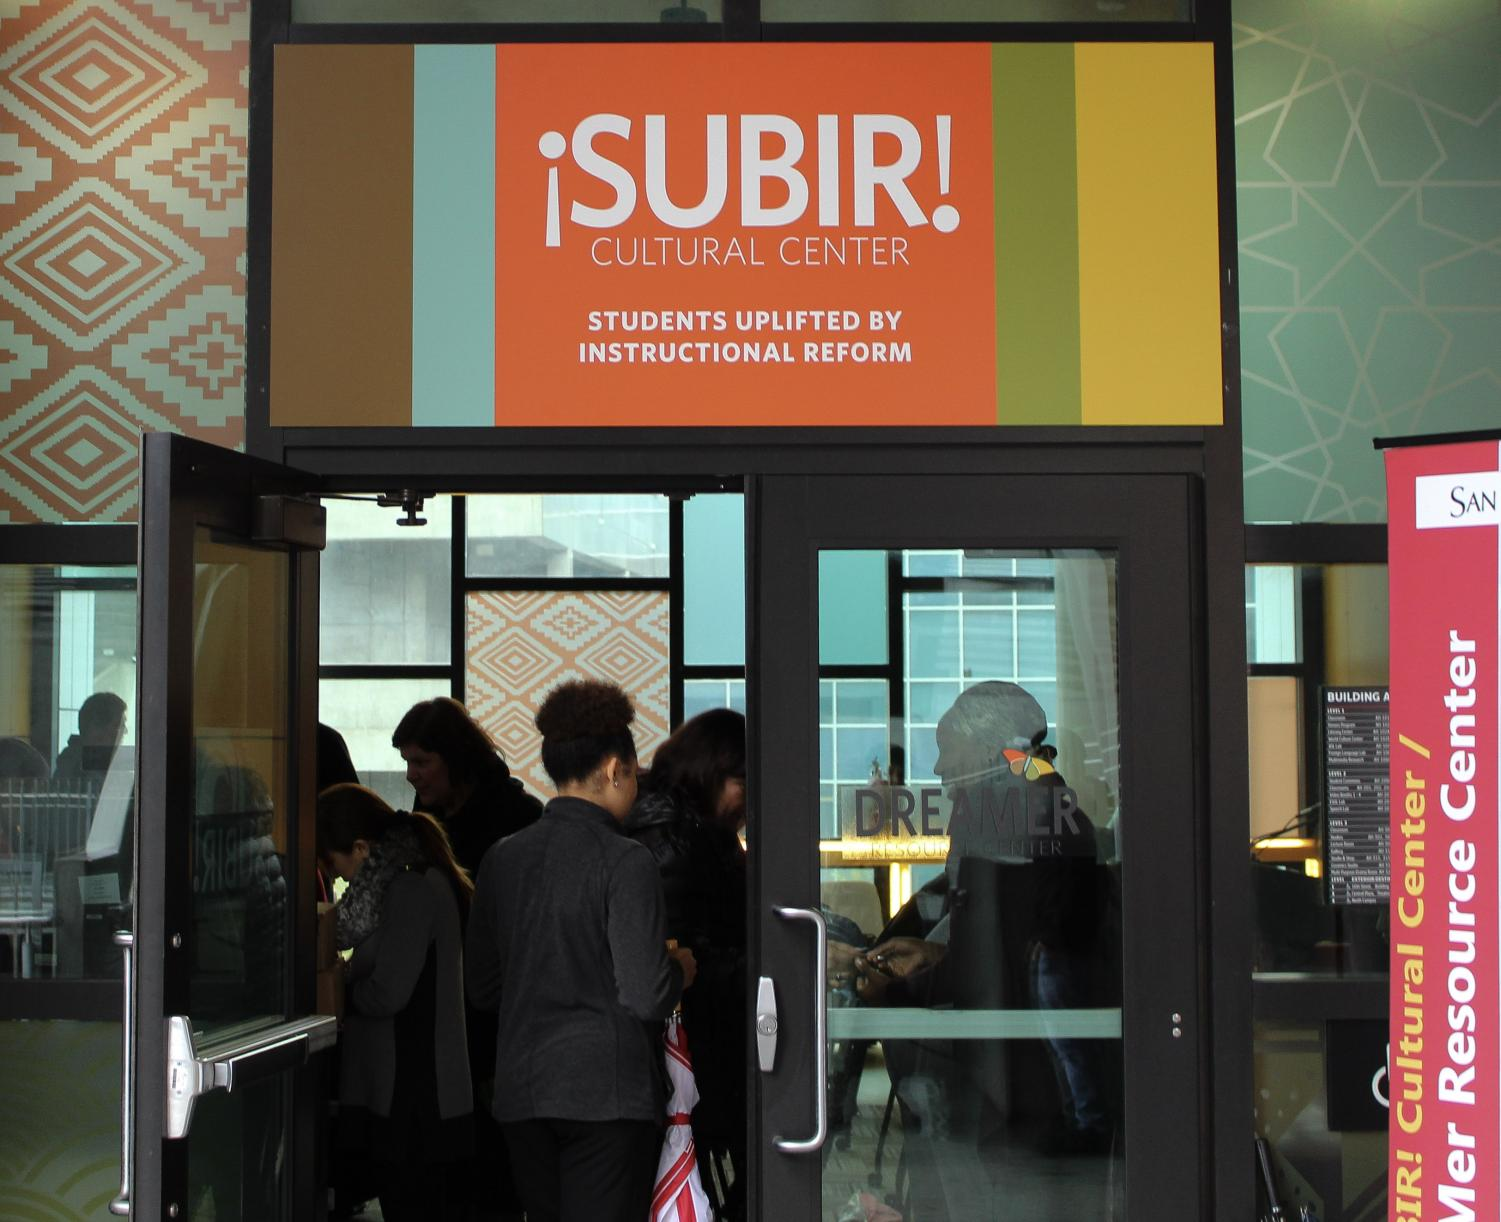 Legal help for immigrants is available at the Subir Cultural Center. Jonny Rico/City Times